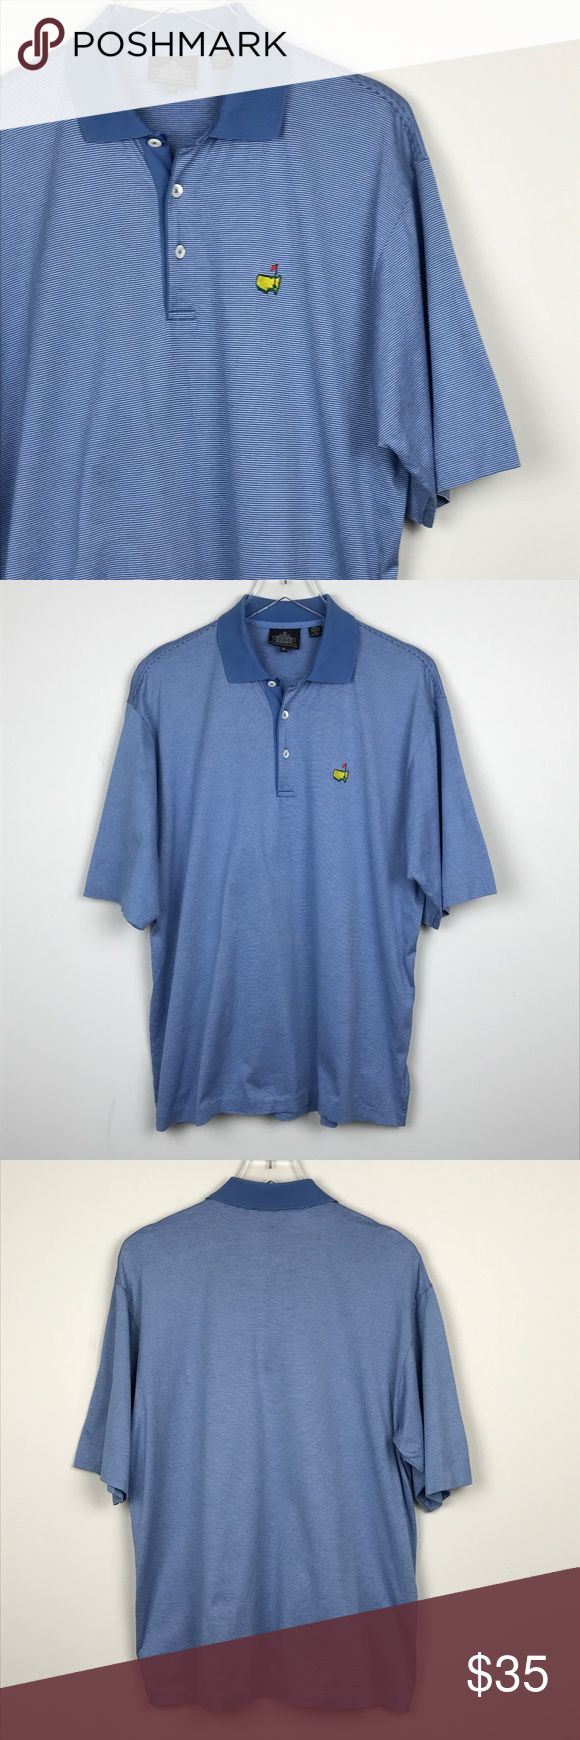 "[Clubhouse Collection] Master's Striped Golf Polo Men's short sleeve polo shirt. Blue striped. Masters logo embroidery on left chest. 100% cotton. Made in Italy.   🔹Pit to Pit: 22"" 🔹Length: 28"" 🔹Condition: Excellent pre-owned condition.  *Z2 Clubhouse Collection Shirts Polos"